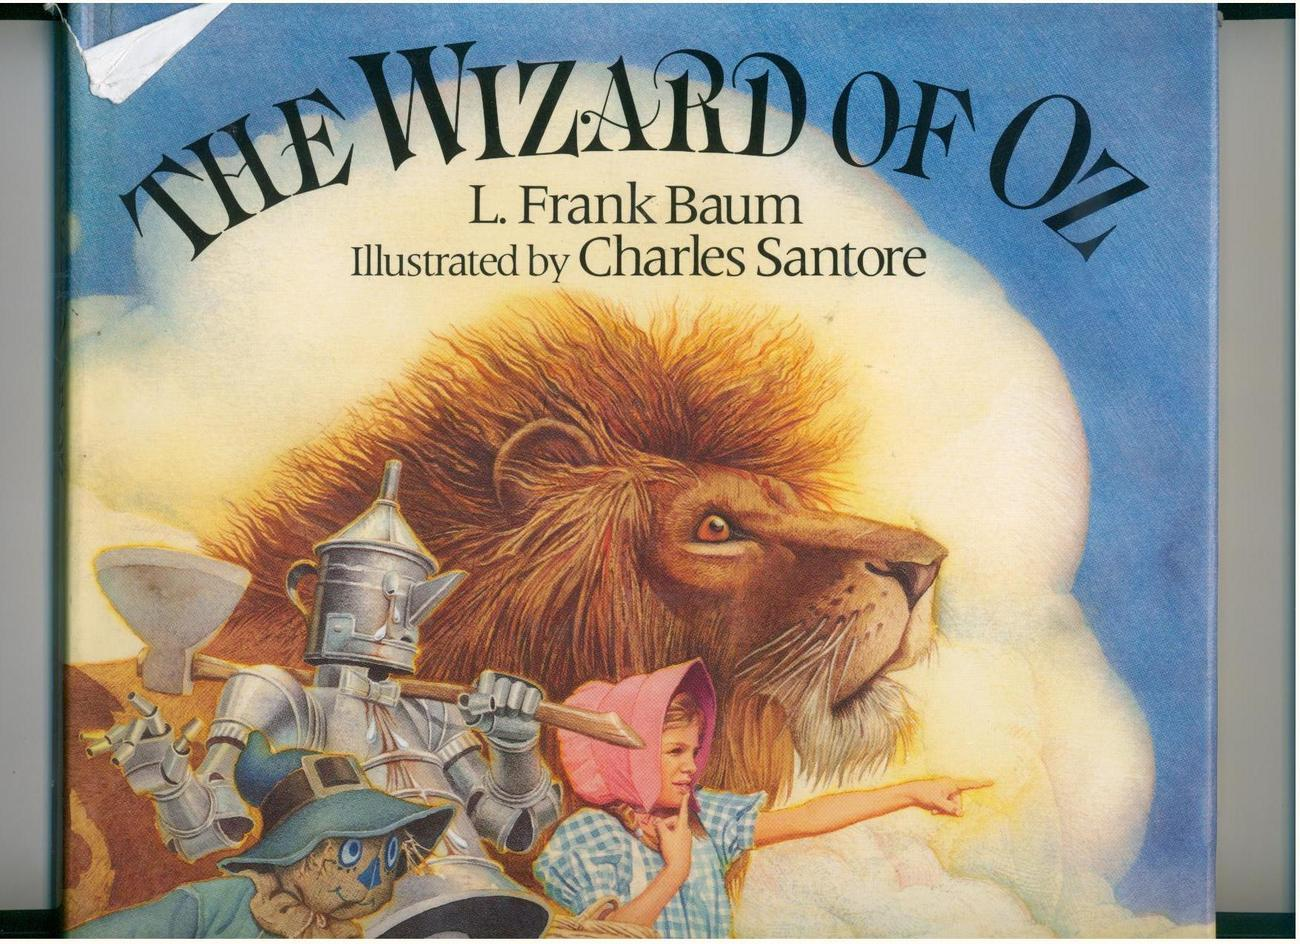 Baum - WIZARD OF OZ - large 1991 ed. - Charles Santore illos